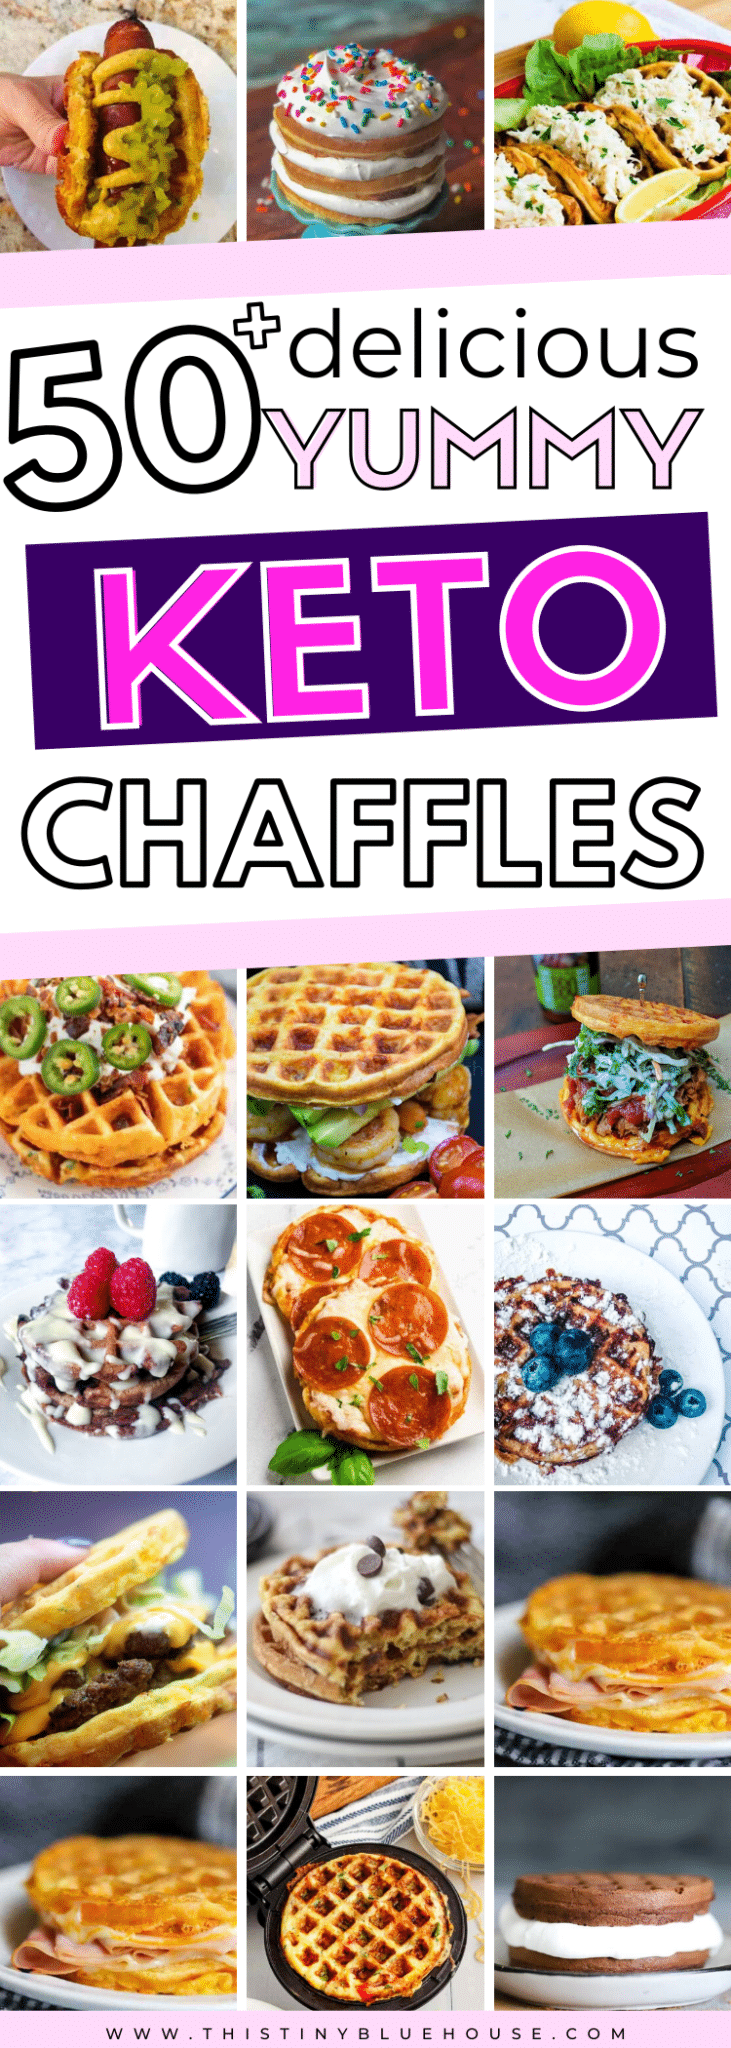 Enjoy one of these easy Keto Chaffle recipes any day of the week with absolutely zero guilt. These easy to make and super satisfying low carb chaffles are great for anyone living a Keto lifestyle. #chaffle #chafflerecipes #bestchafflerecipes #chafflesweet #chafflesavory #easychafflerecipes #ketorecipes